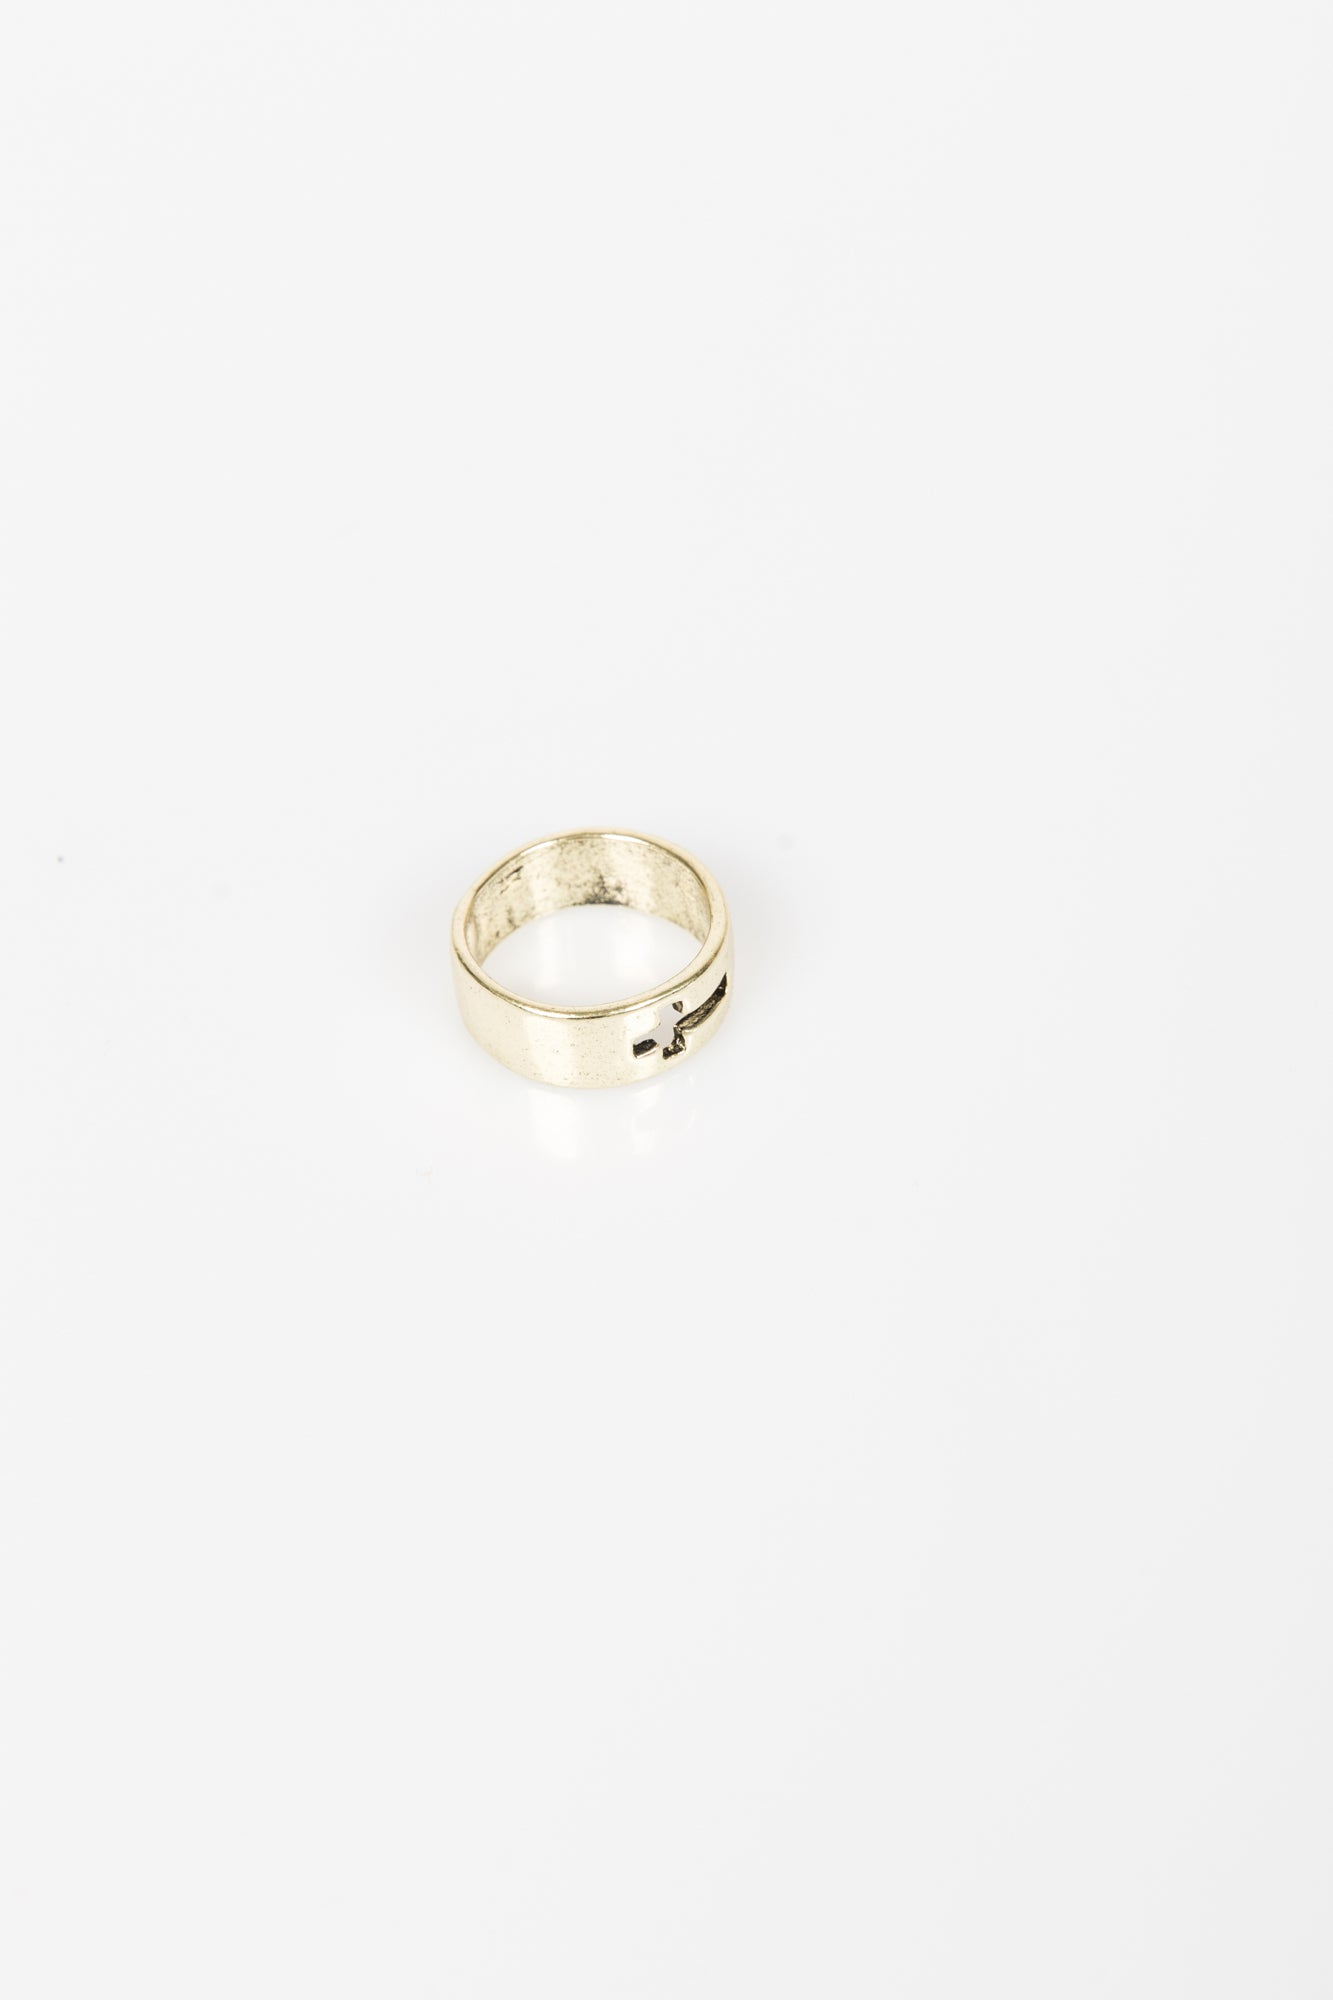 Burnished Cross Band Ring Vintage Gold